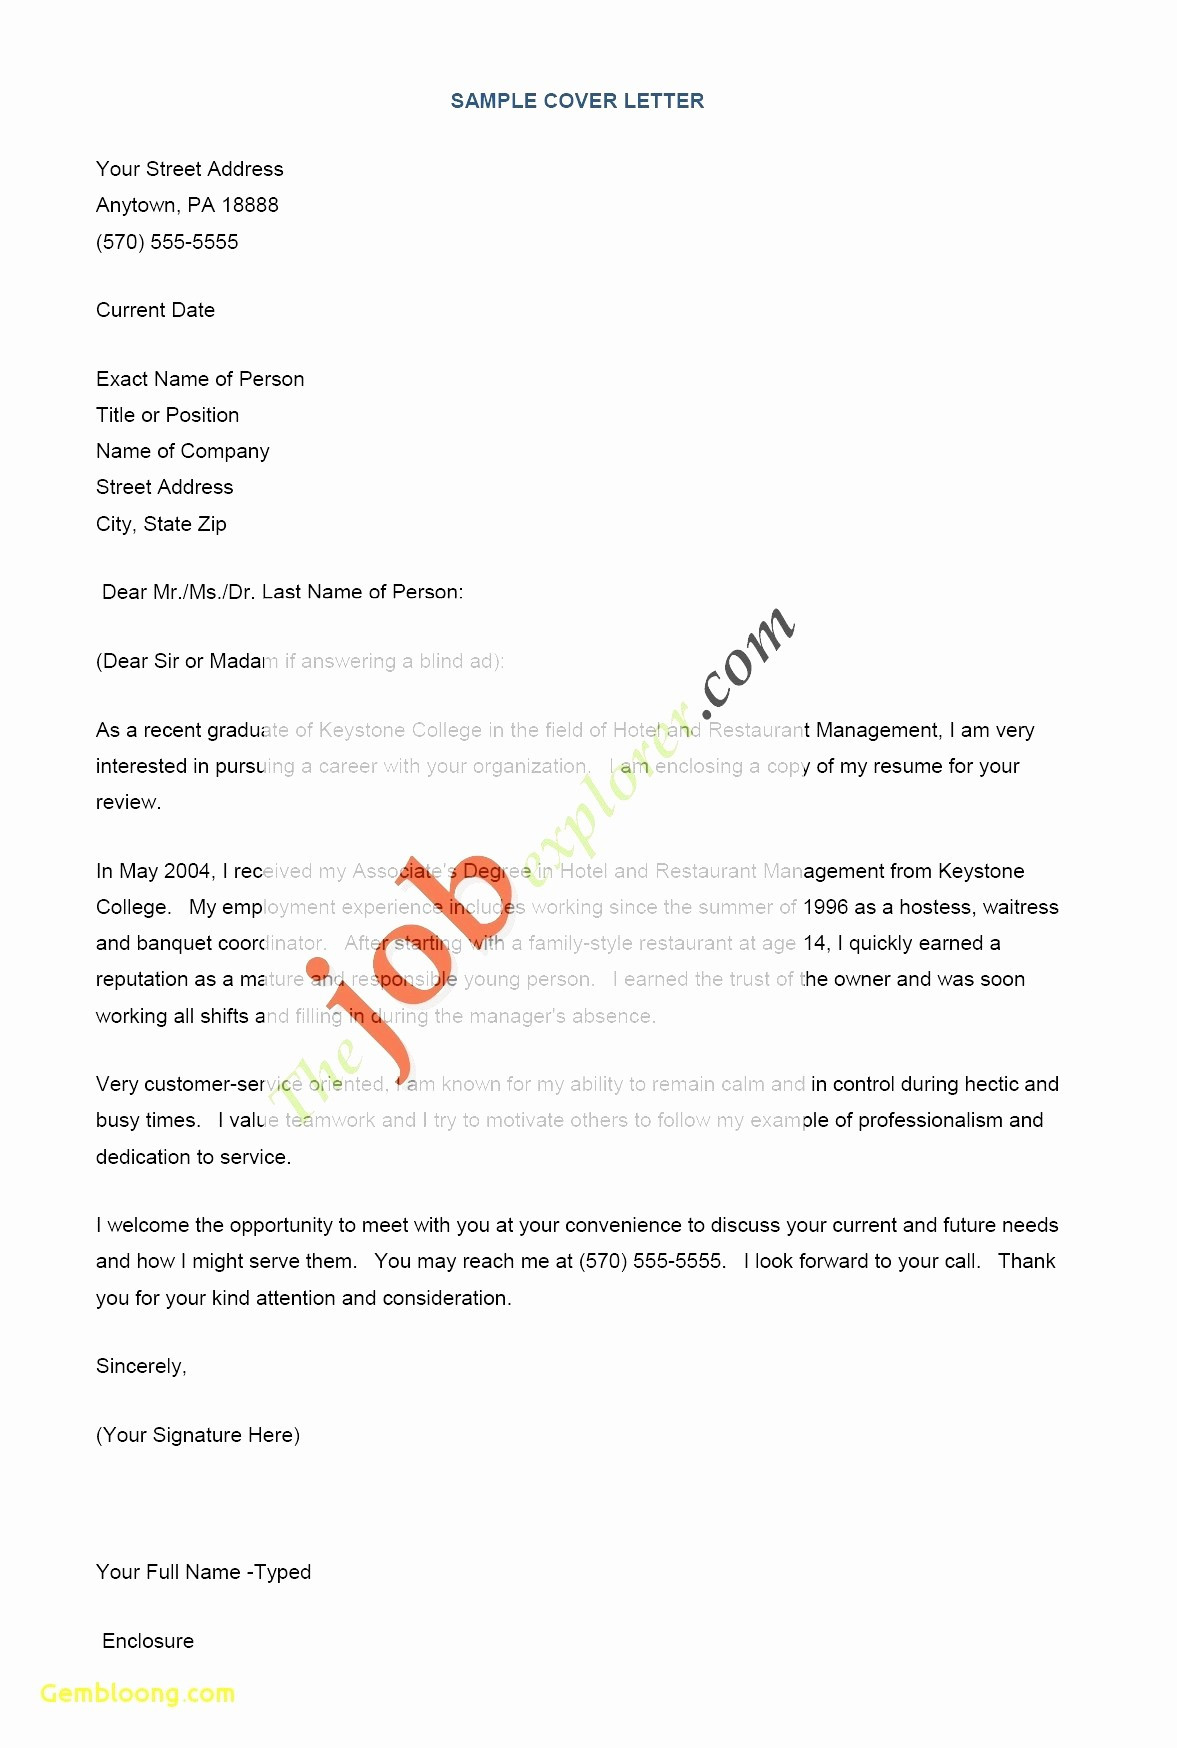 Career Builder Cover Letter Template - Career Builder Resume Templates Reference New Free Easy Resume